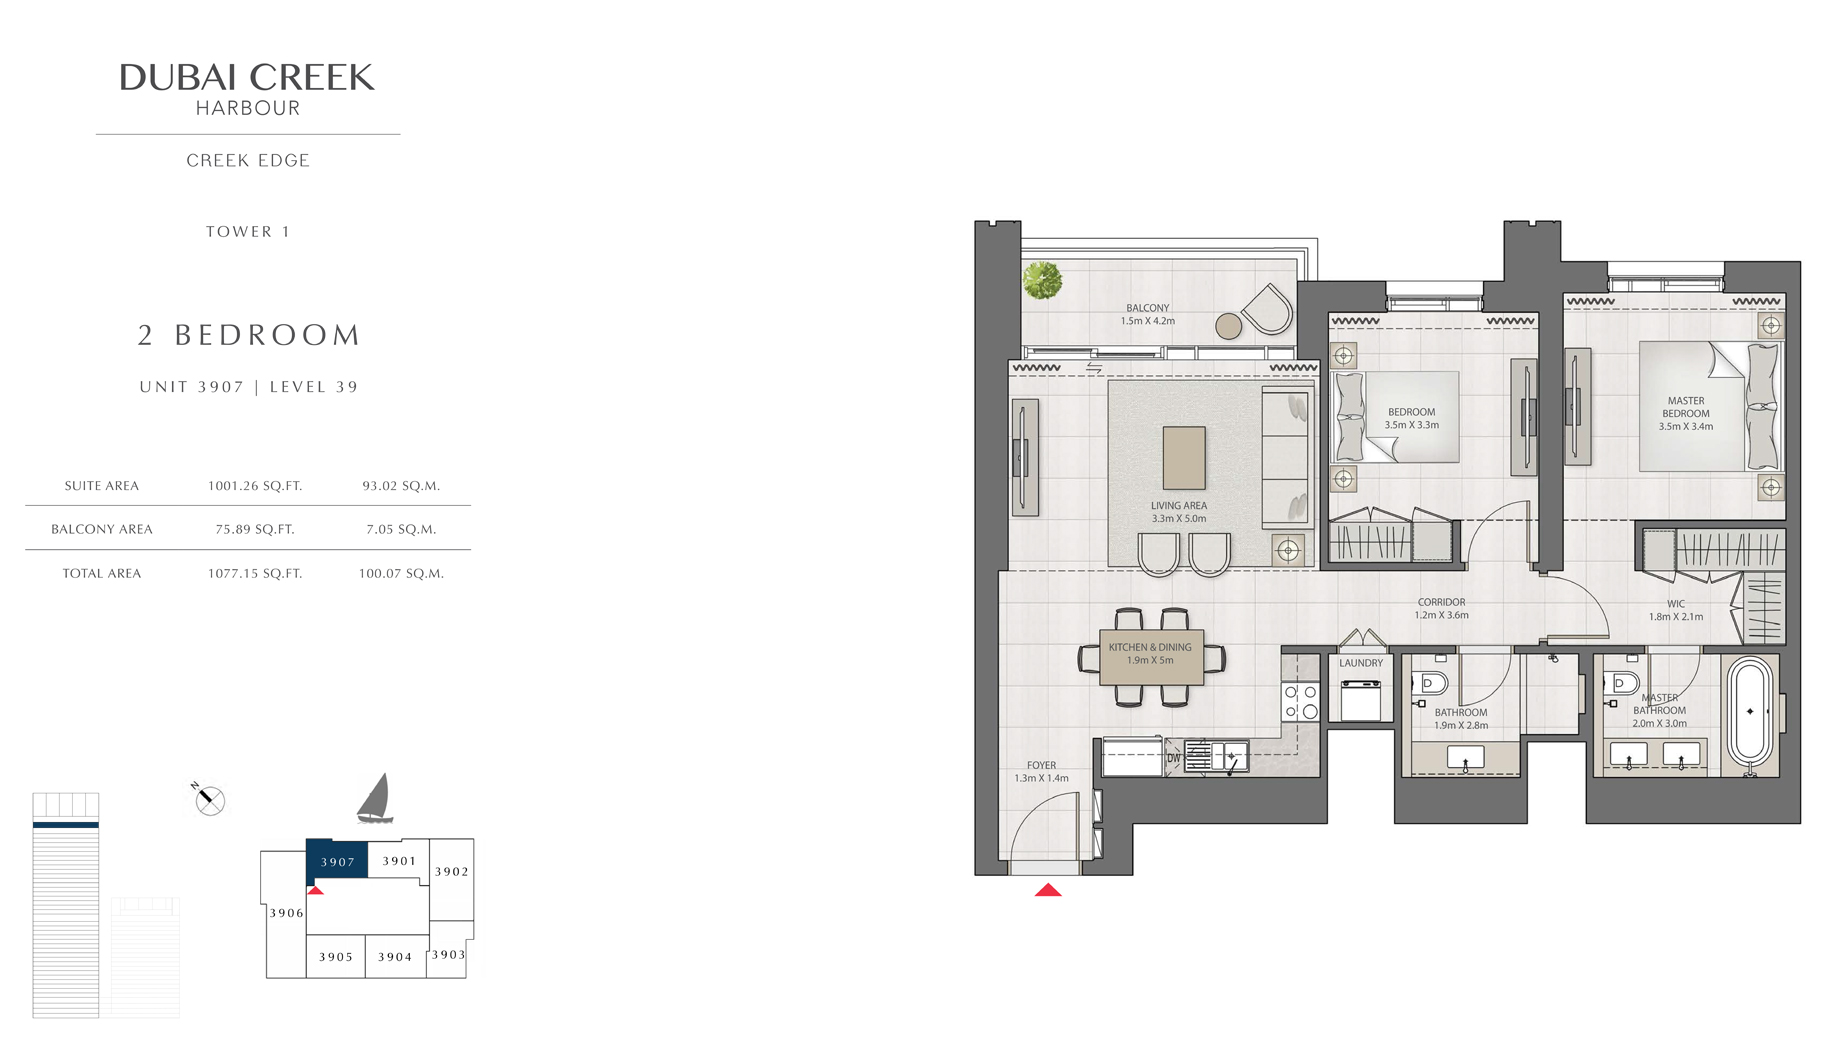 2 Bedroom Tower 1 Unit 3907 Level 39 Size 1077 sq.ft